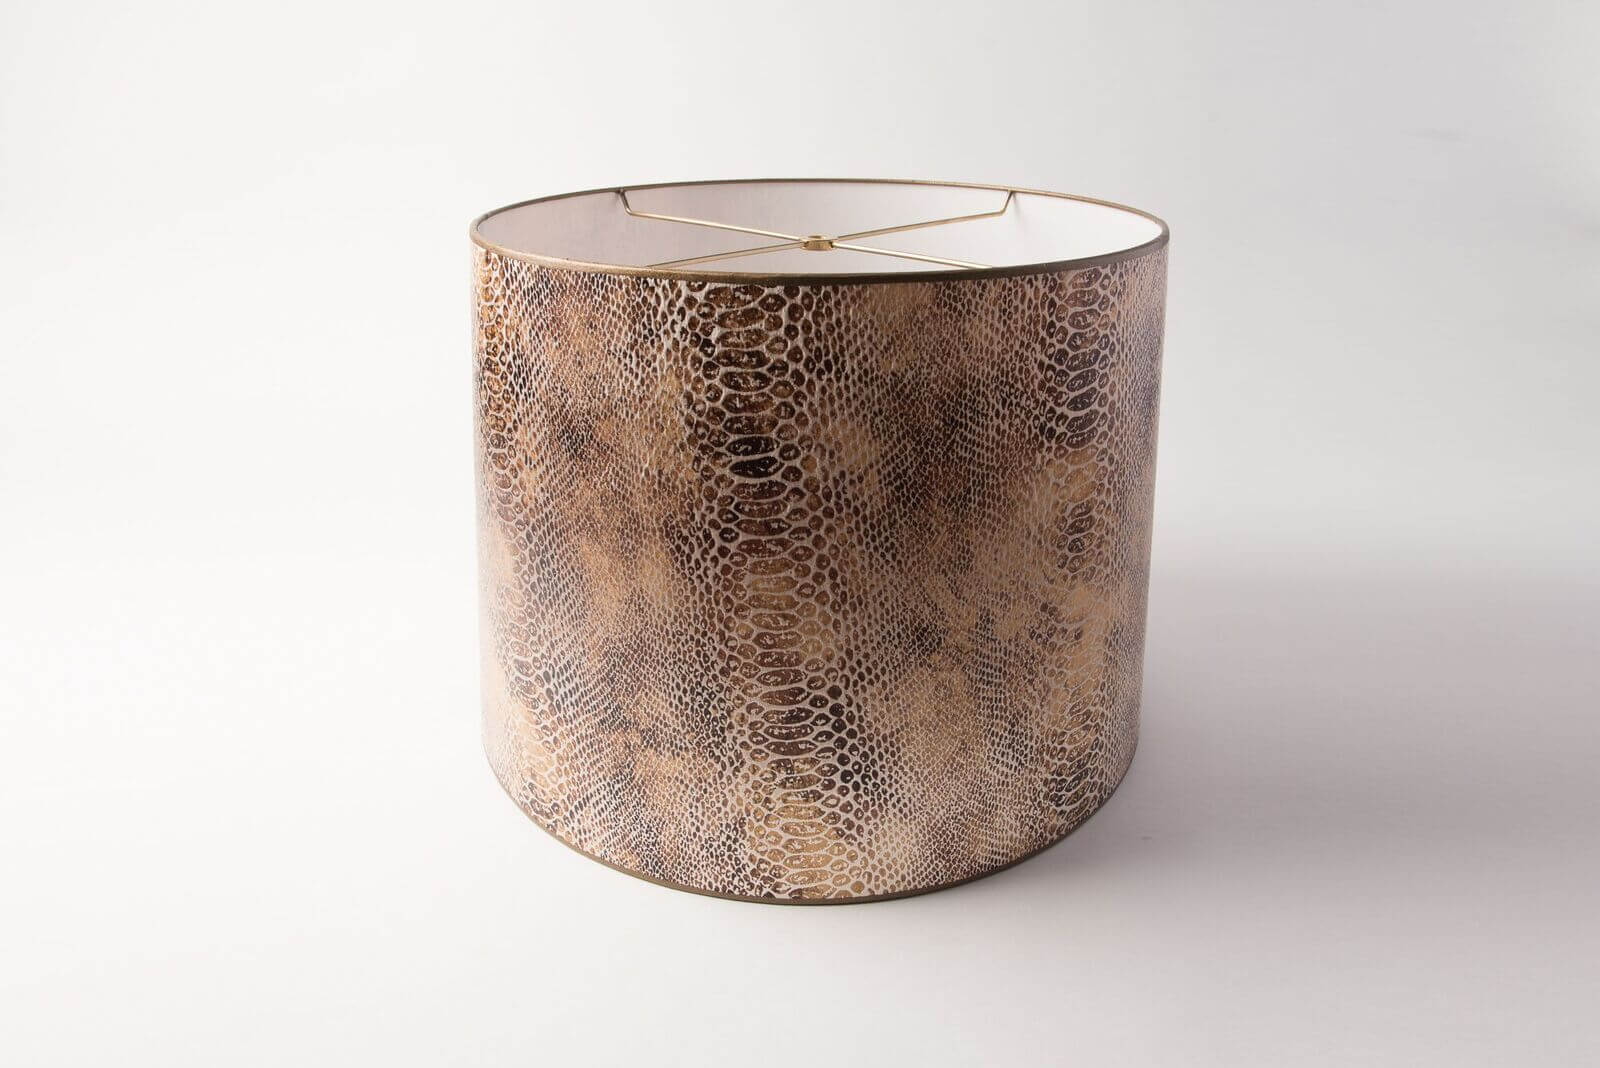 https://www.hotel-lamps.com/resources/assets/images/product_images/retro_drum_snakeskin_tan.jpeg